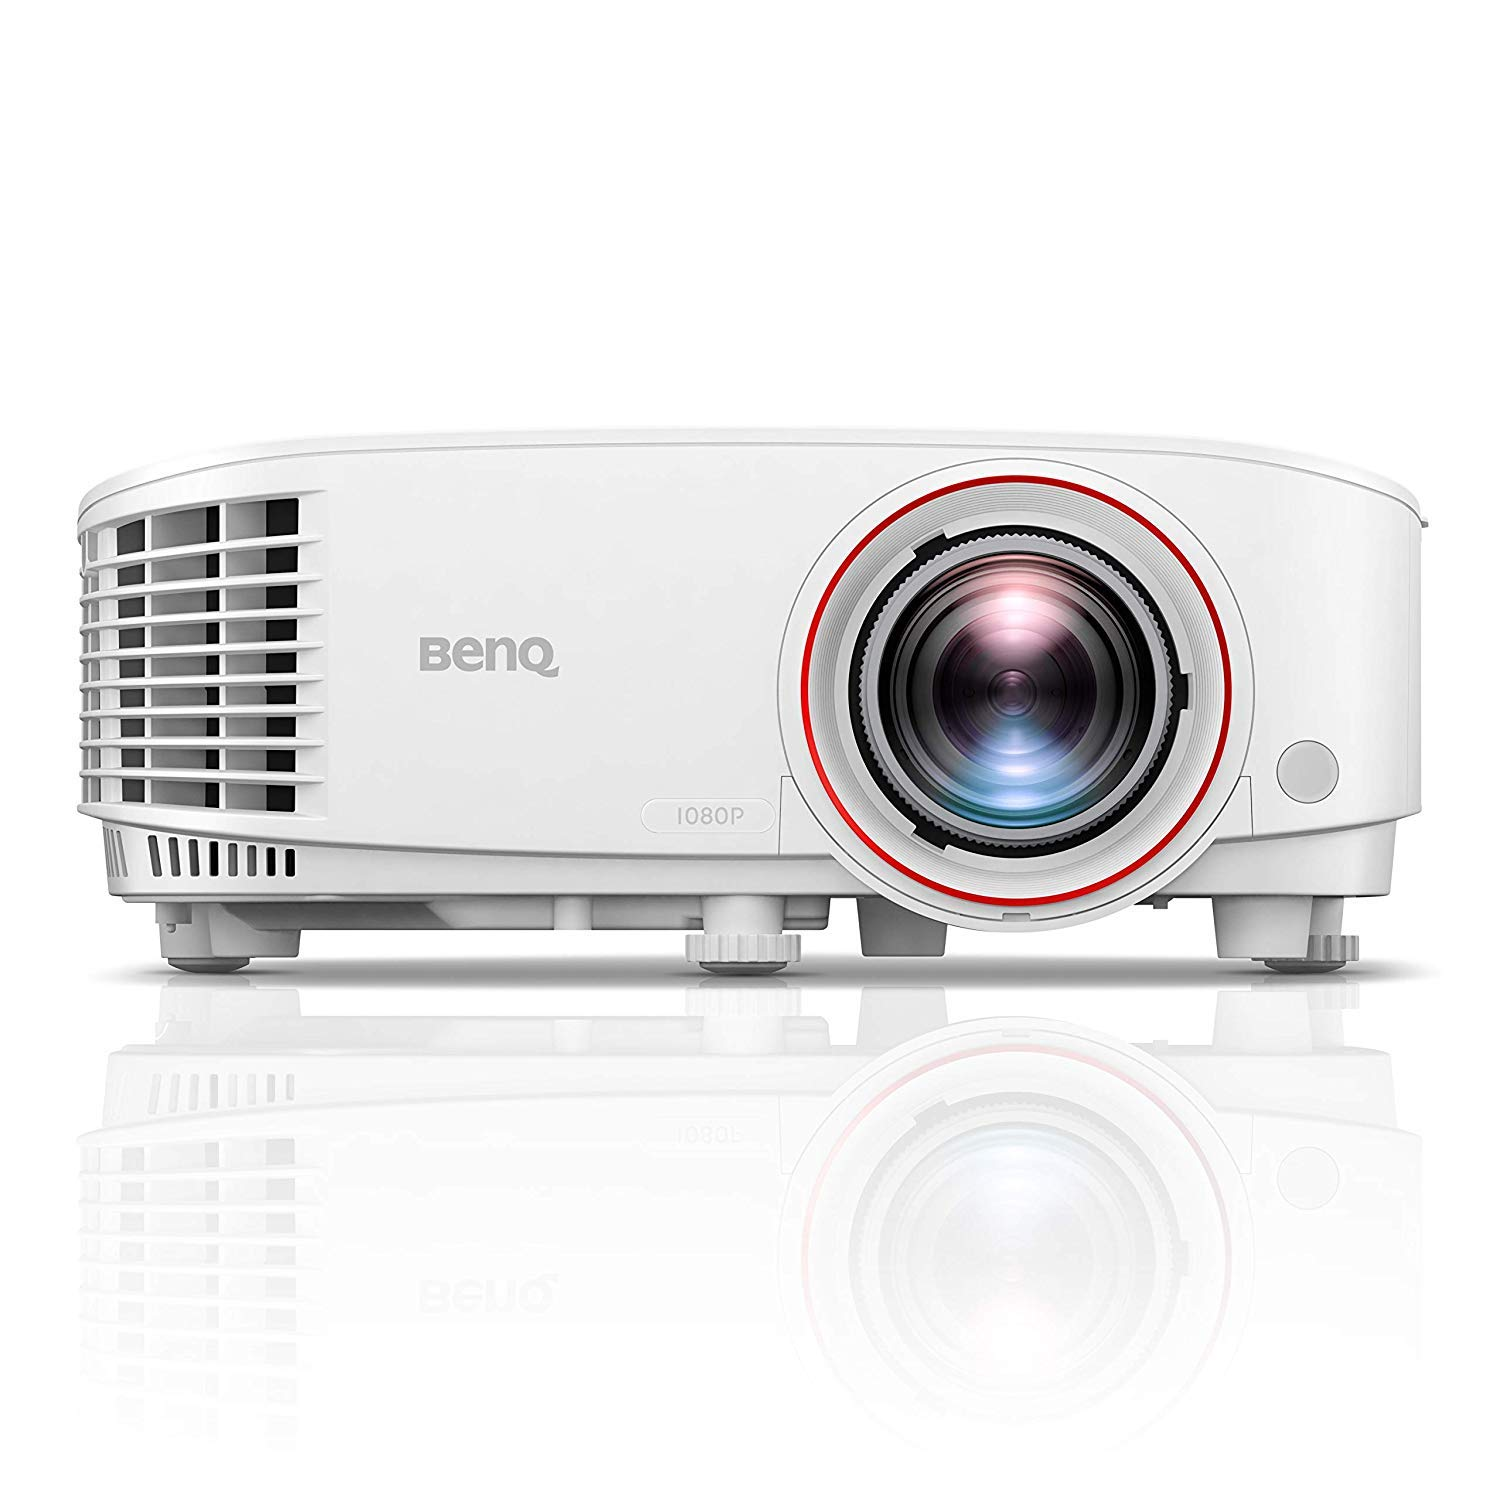 BenQ TH671ST 1080p Short Throw Projector |3000 Lumens for Lights On Entertainment | 92% Rec. 709 for Accurate Colors | Low Input Lag Ideal for Gaming